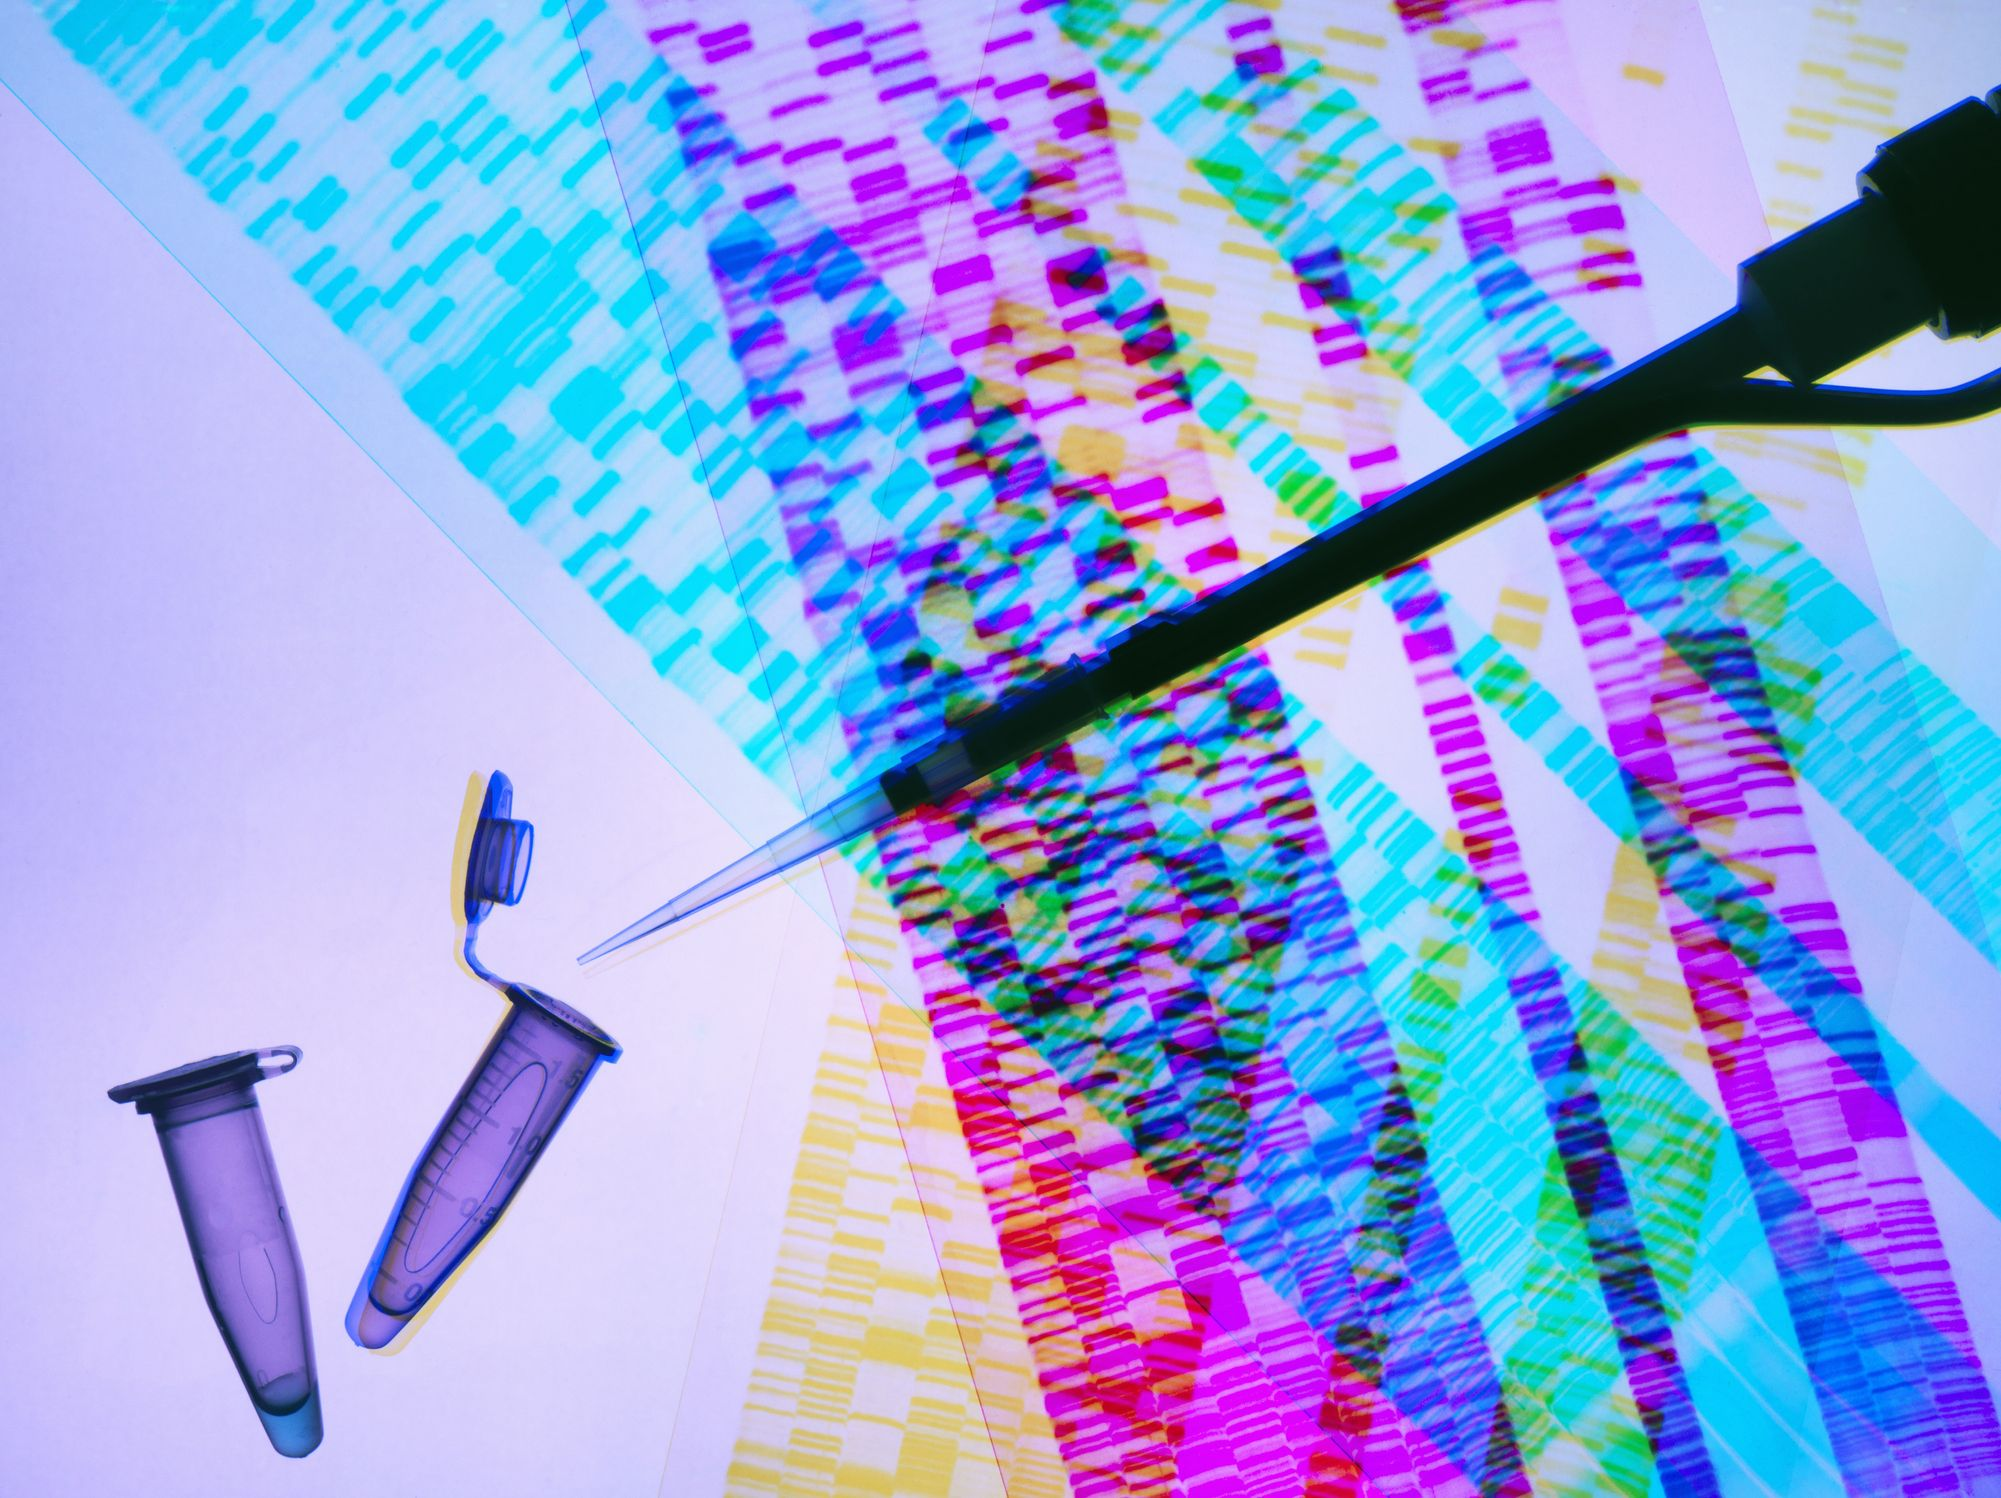 23andMe May Have Used Your DNA to Develop a New Drug